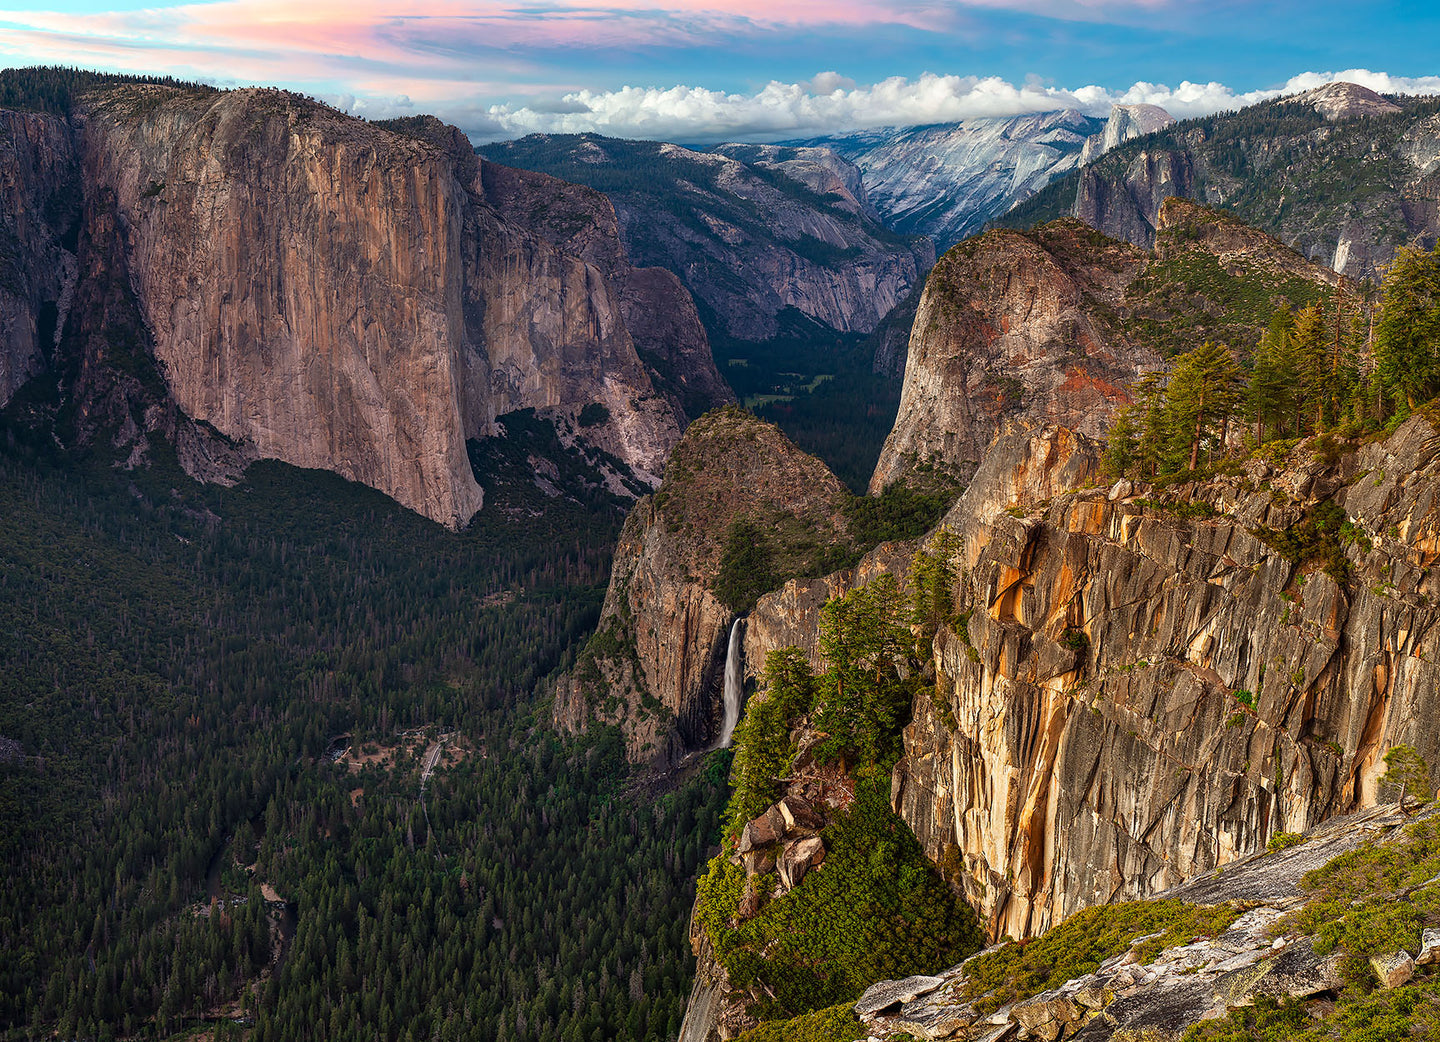 Bridalveil Fall and Yosemite Valley from Stanford Point